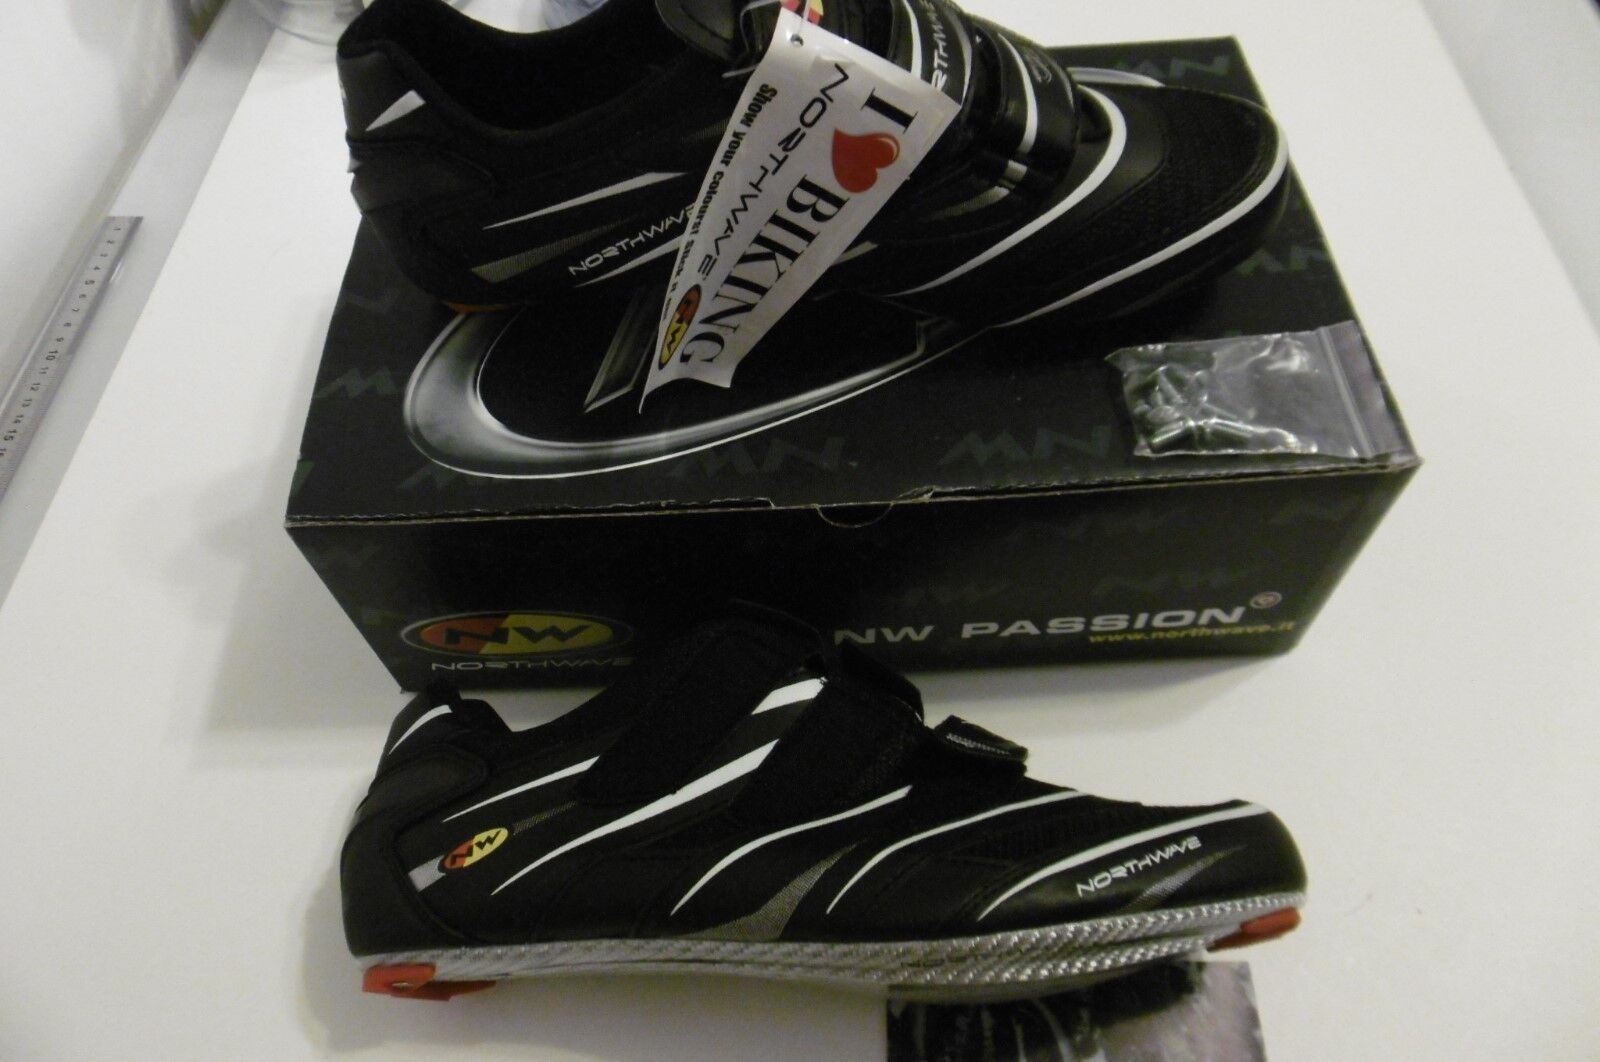 NORTHWAVE Black Shoes Carbon Composite Air Flow System Size 45 New In Box